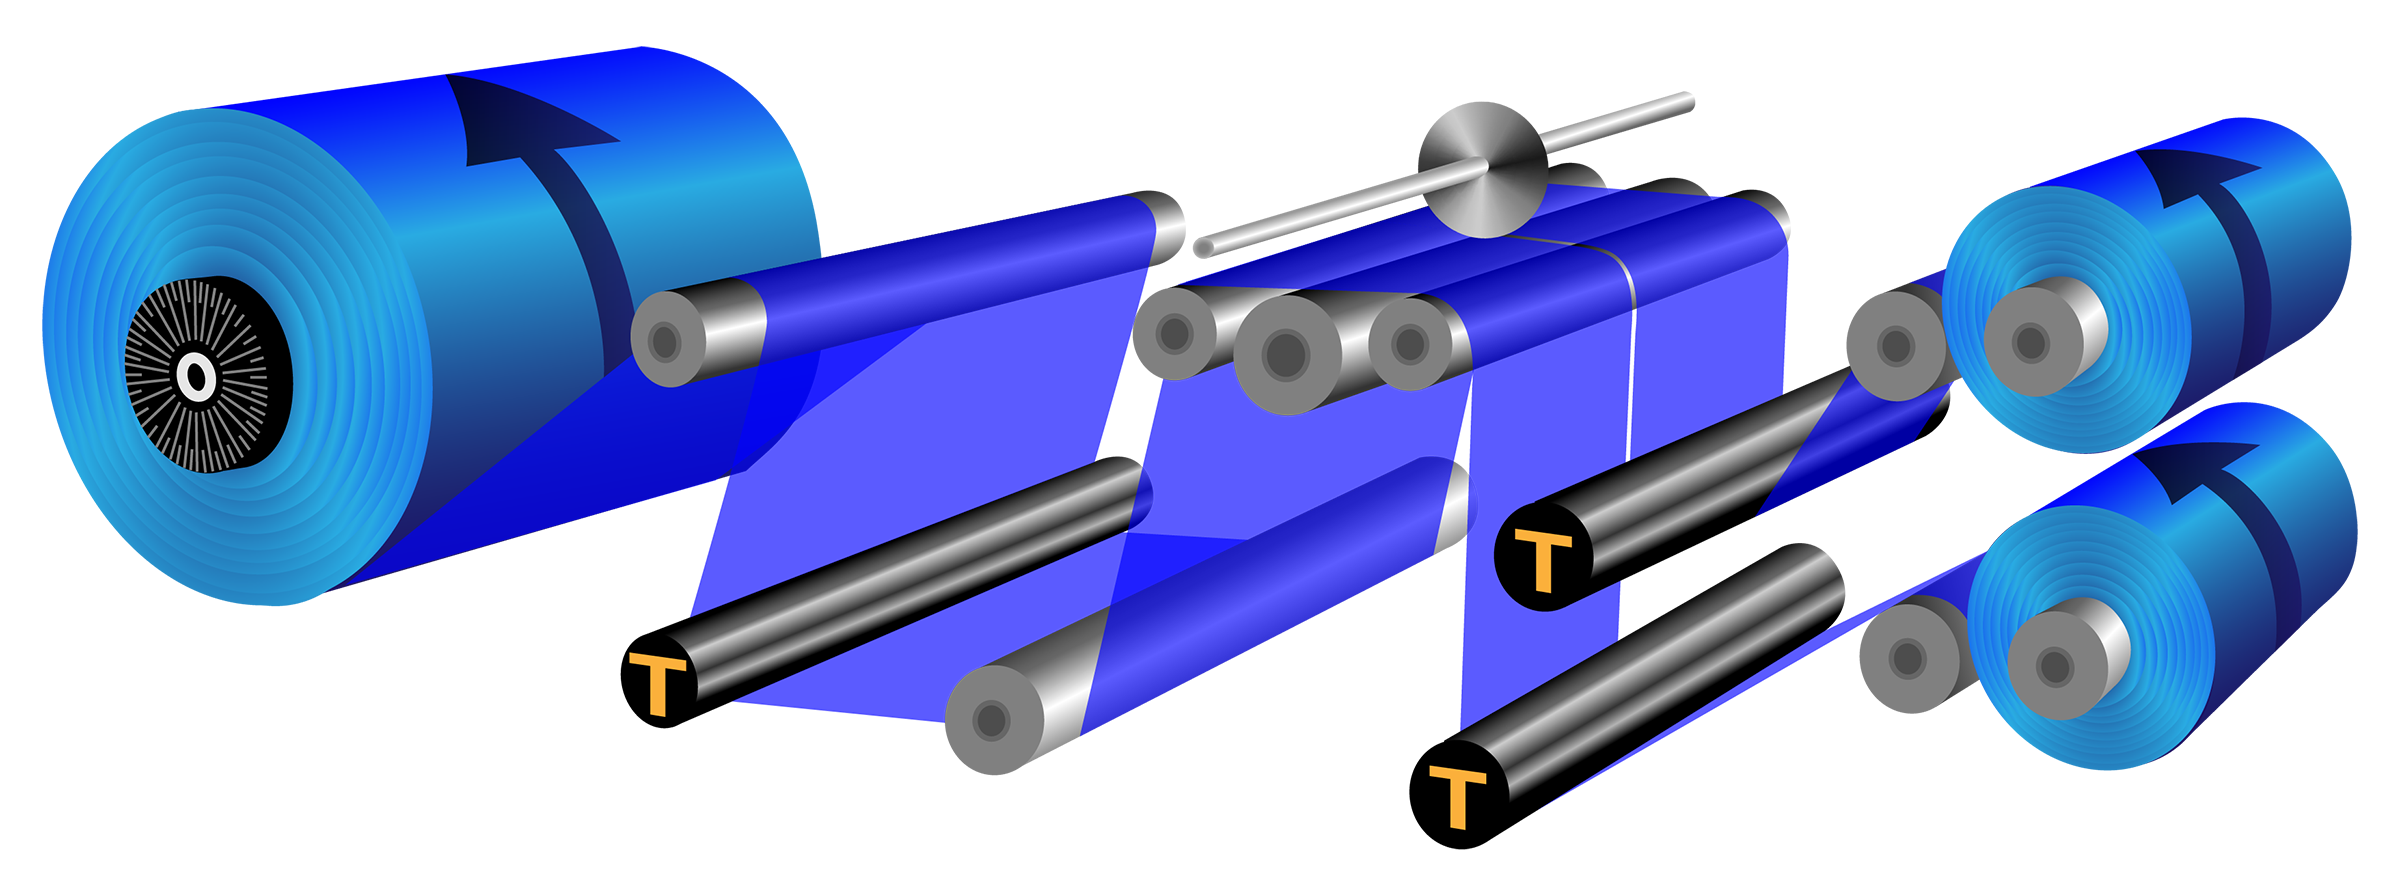 Illustration of typical slitter-rewinder tension control